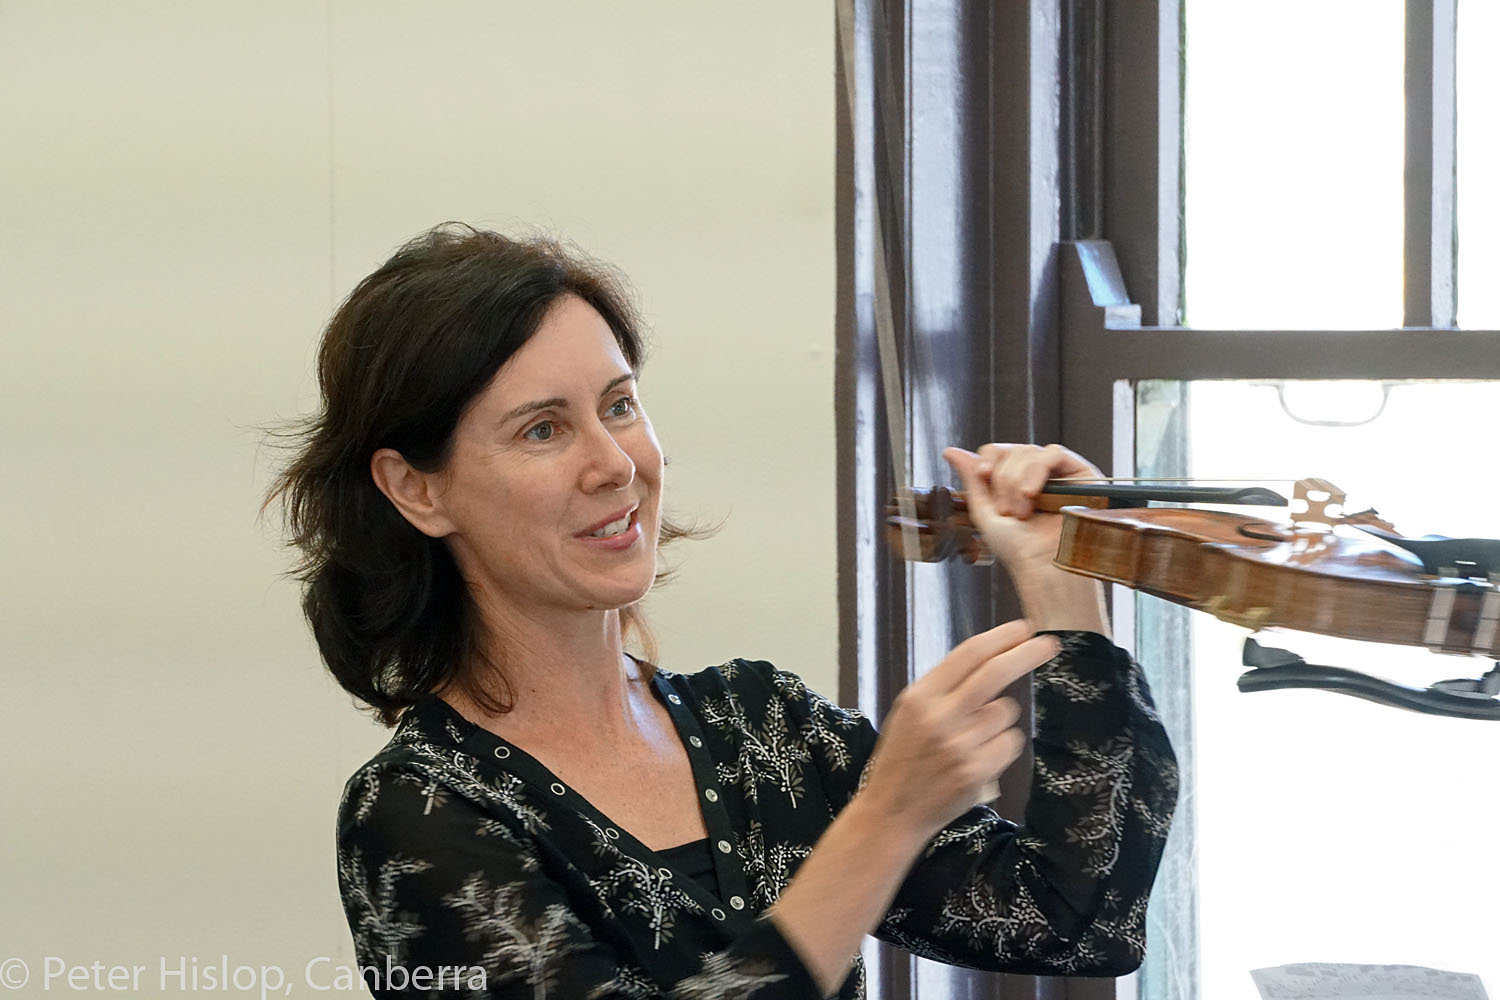 CIMF 2016 - Concert 12 - Braddons Bread and Games. Anna McMichael discusses her violin